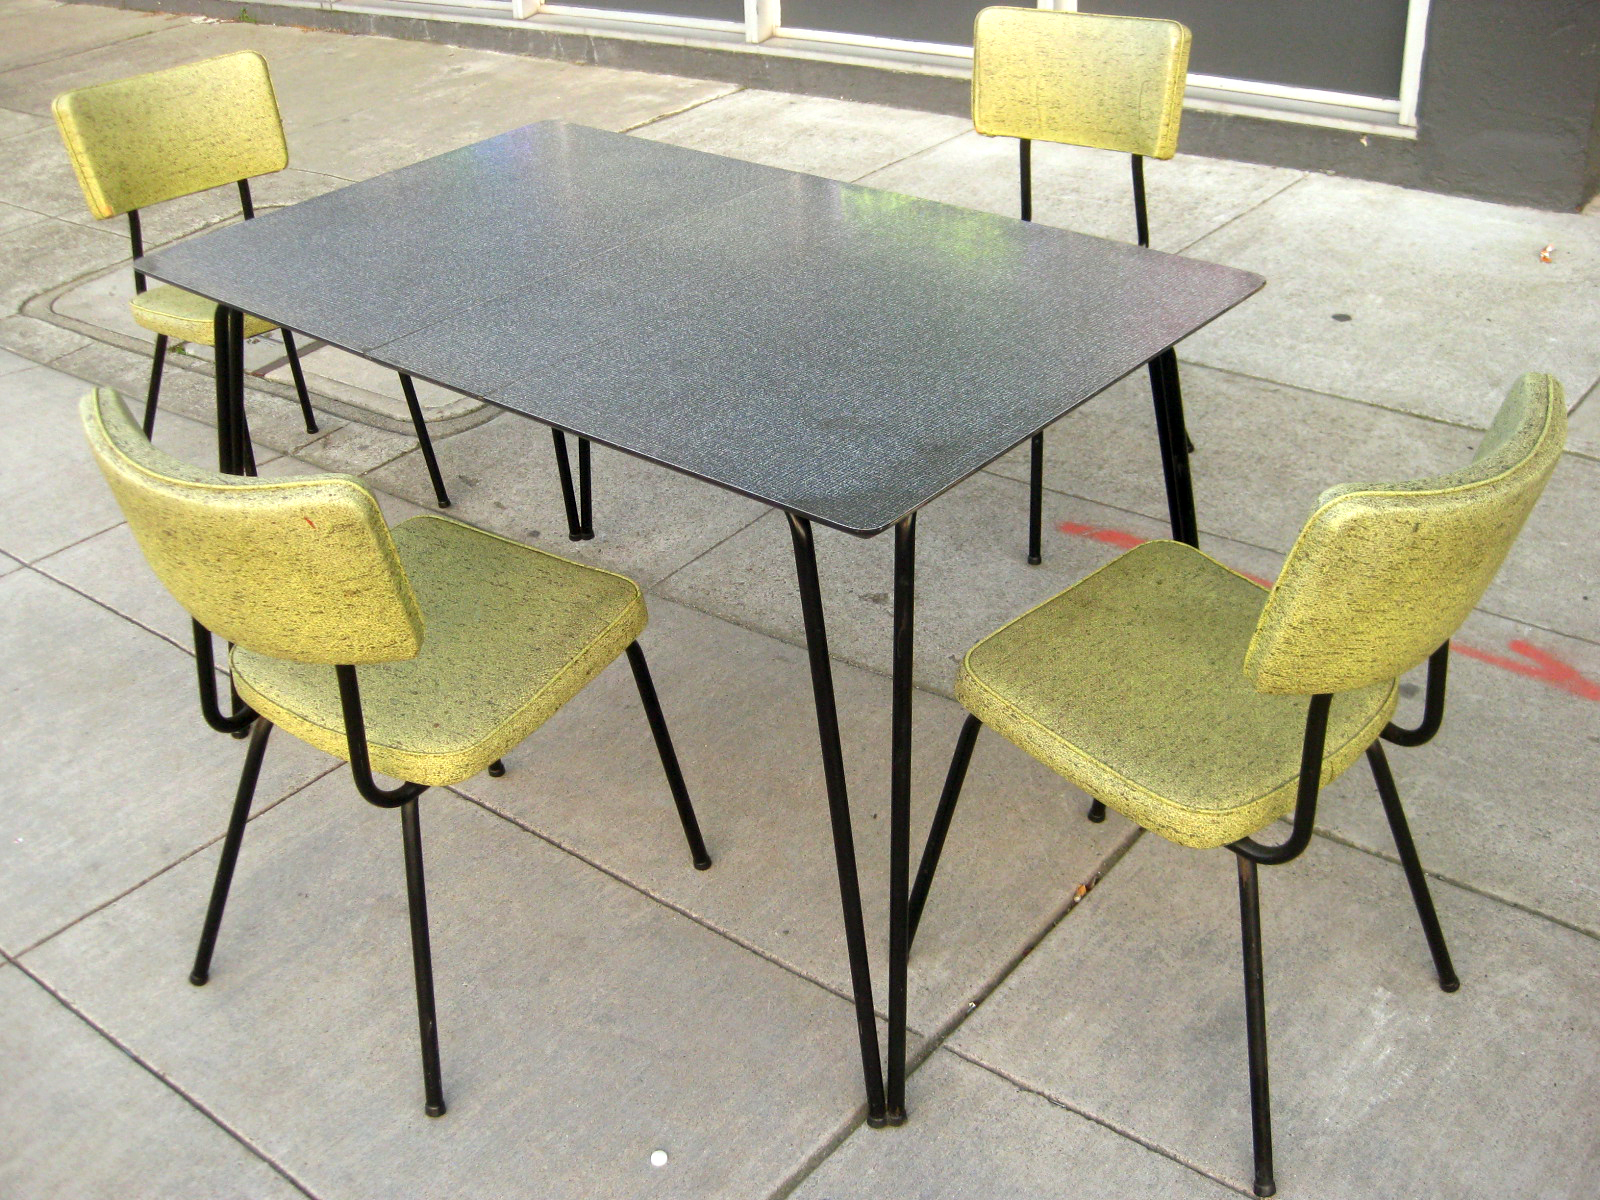 Uhuru furniture collectibles sold 1960s kitchen table Kitchen table and chairs